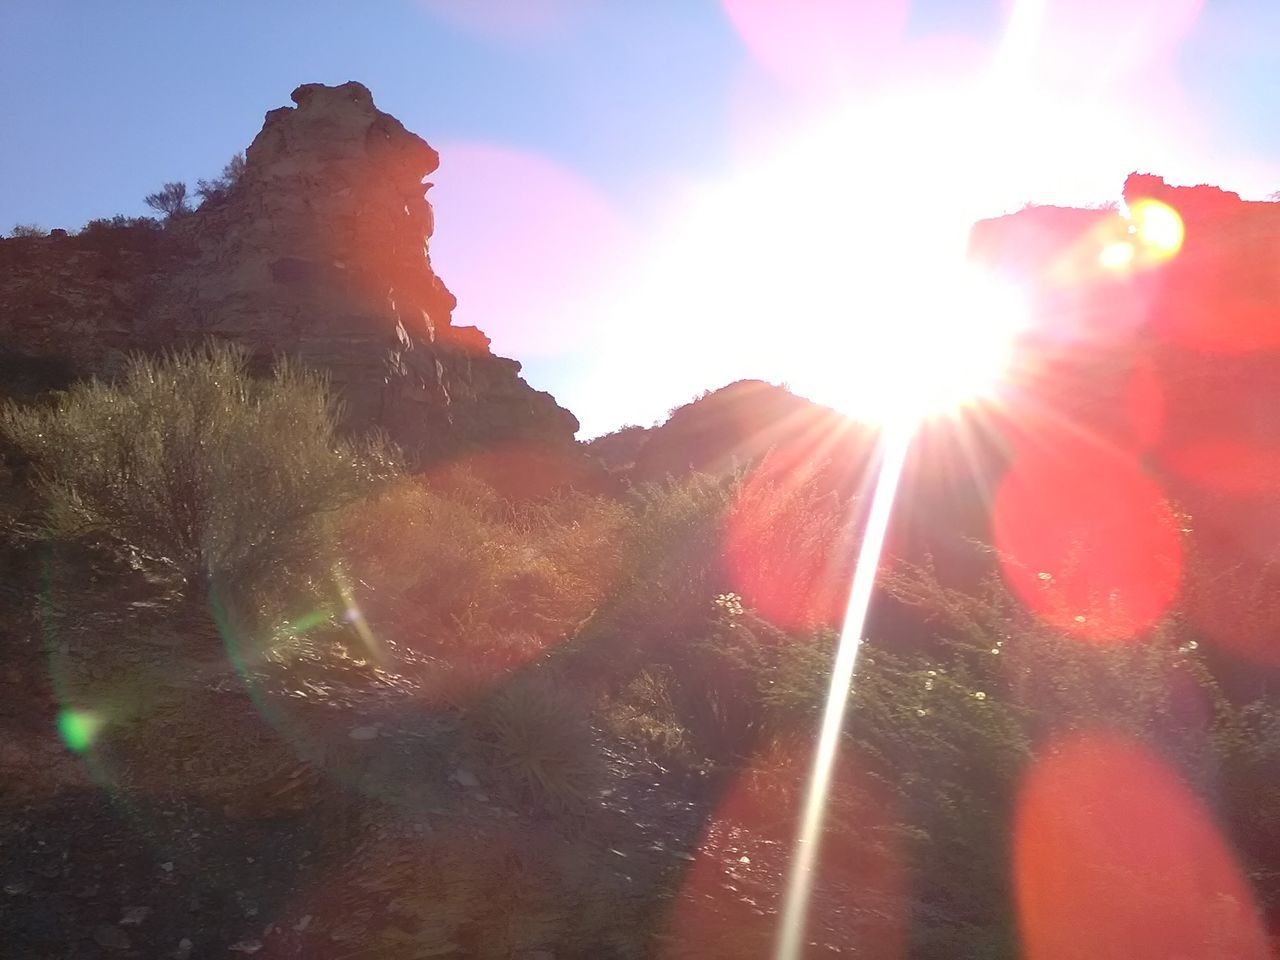 Adult Adults Only Adventure Argentina Back Lit Day Lens Flare Mountains Nature One Person Outdoors People Silhouette Sky Solar Flare Southamerica Startravel2016 Summer Summertime Sun Sunbeam Sunlight Travelphotography